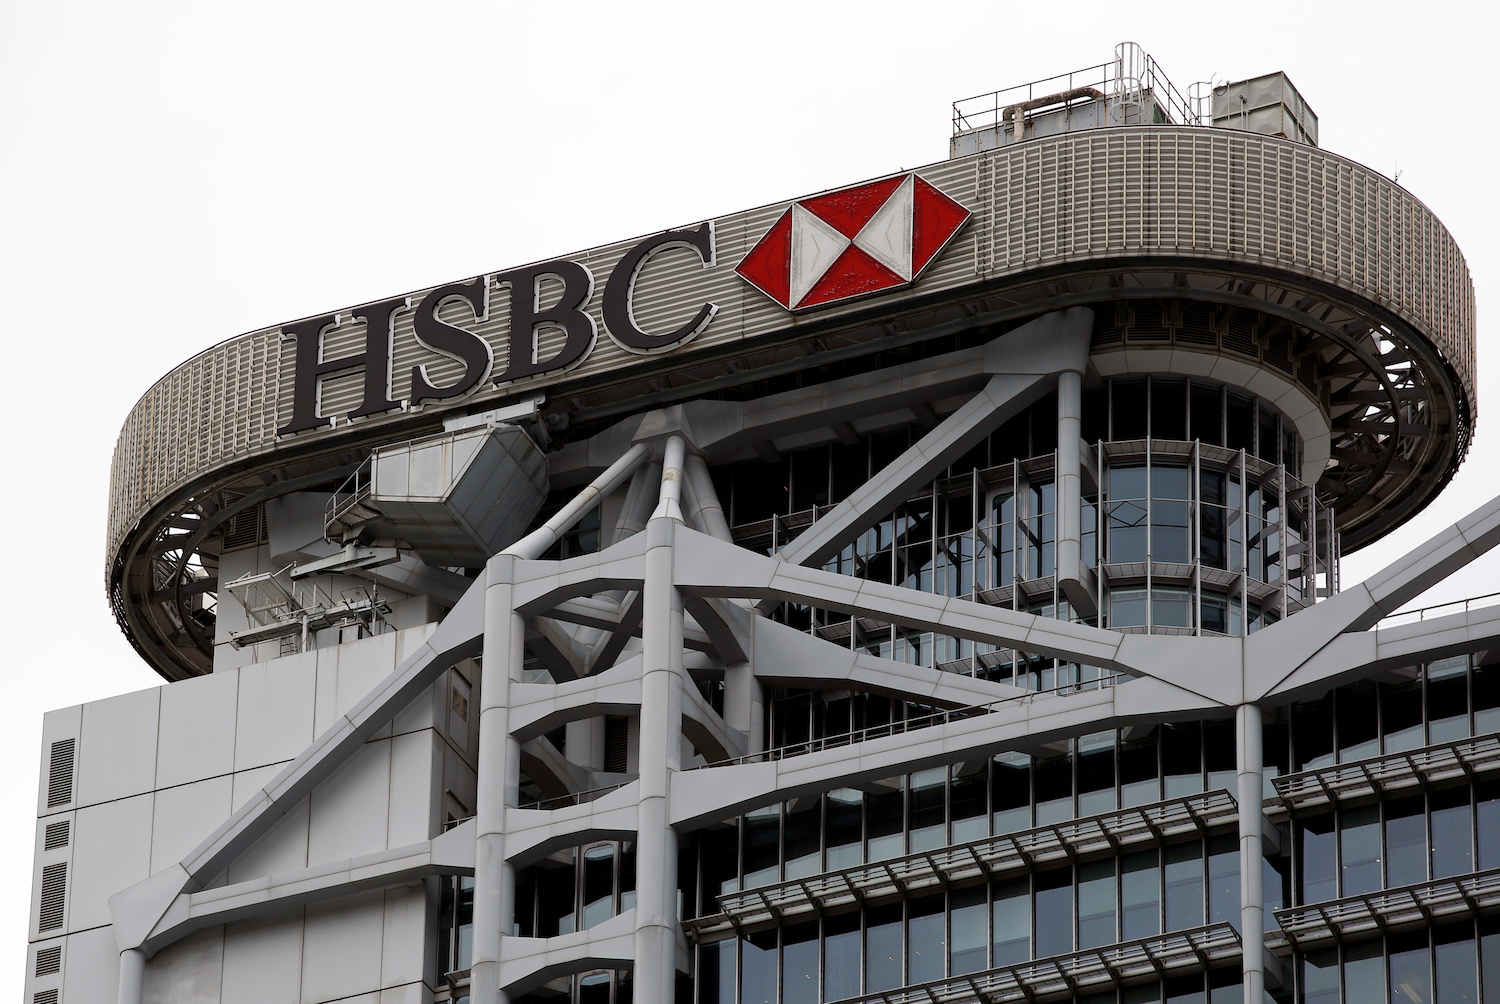 HSBC bows to pressure to cut fossil fuel finance